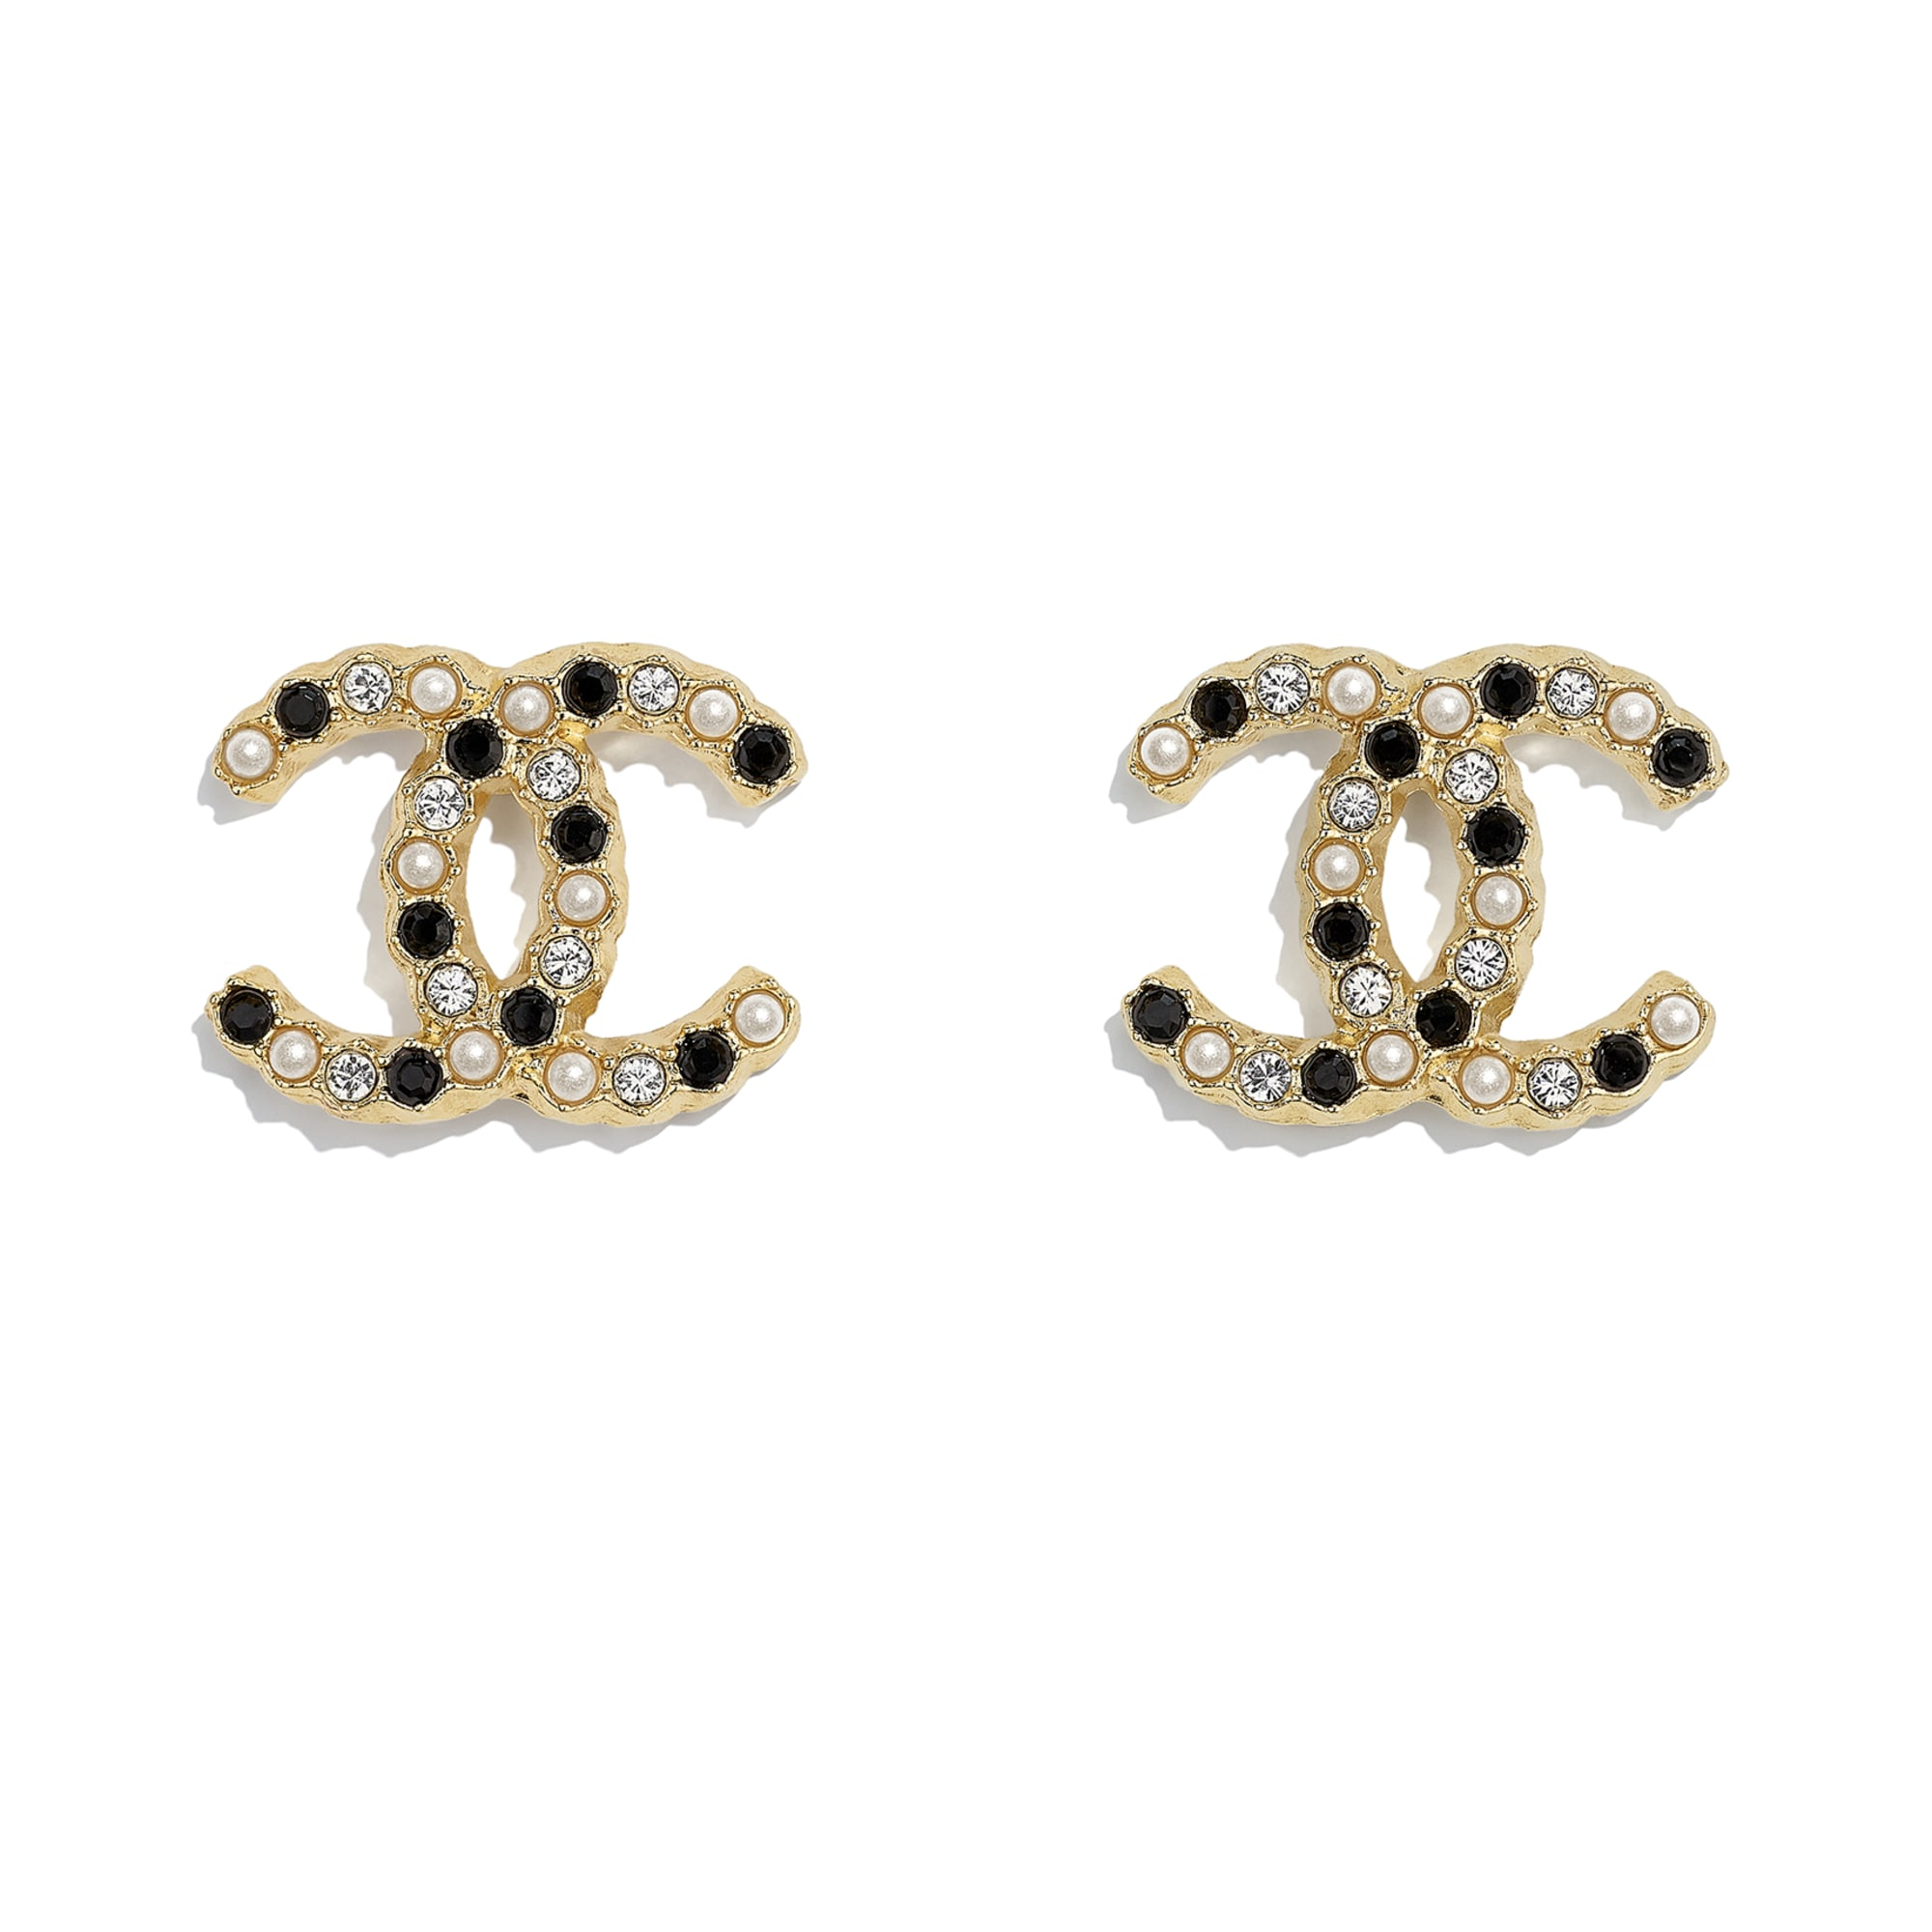 Earrings - Gold, Pearly White, Black & Crystal - Metal, Glass Pearls & Diamantés - CHANEL - Default view - see standard sized version